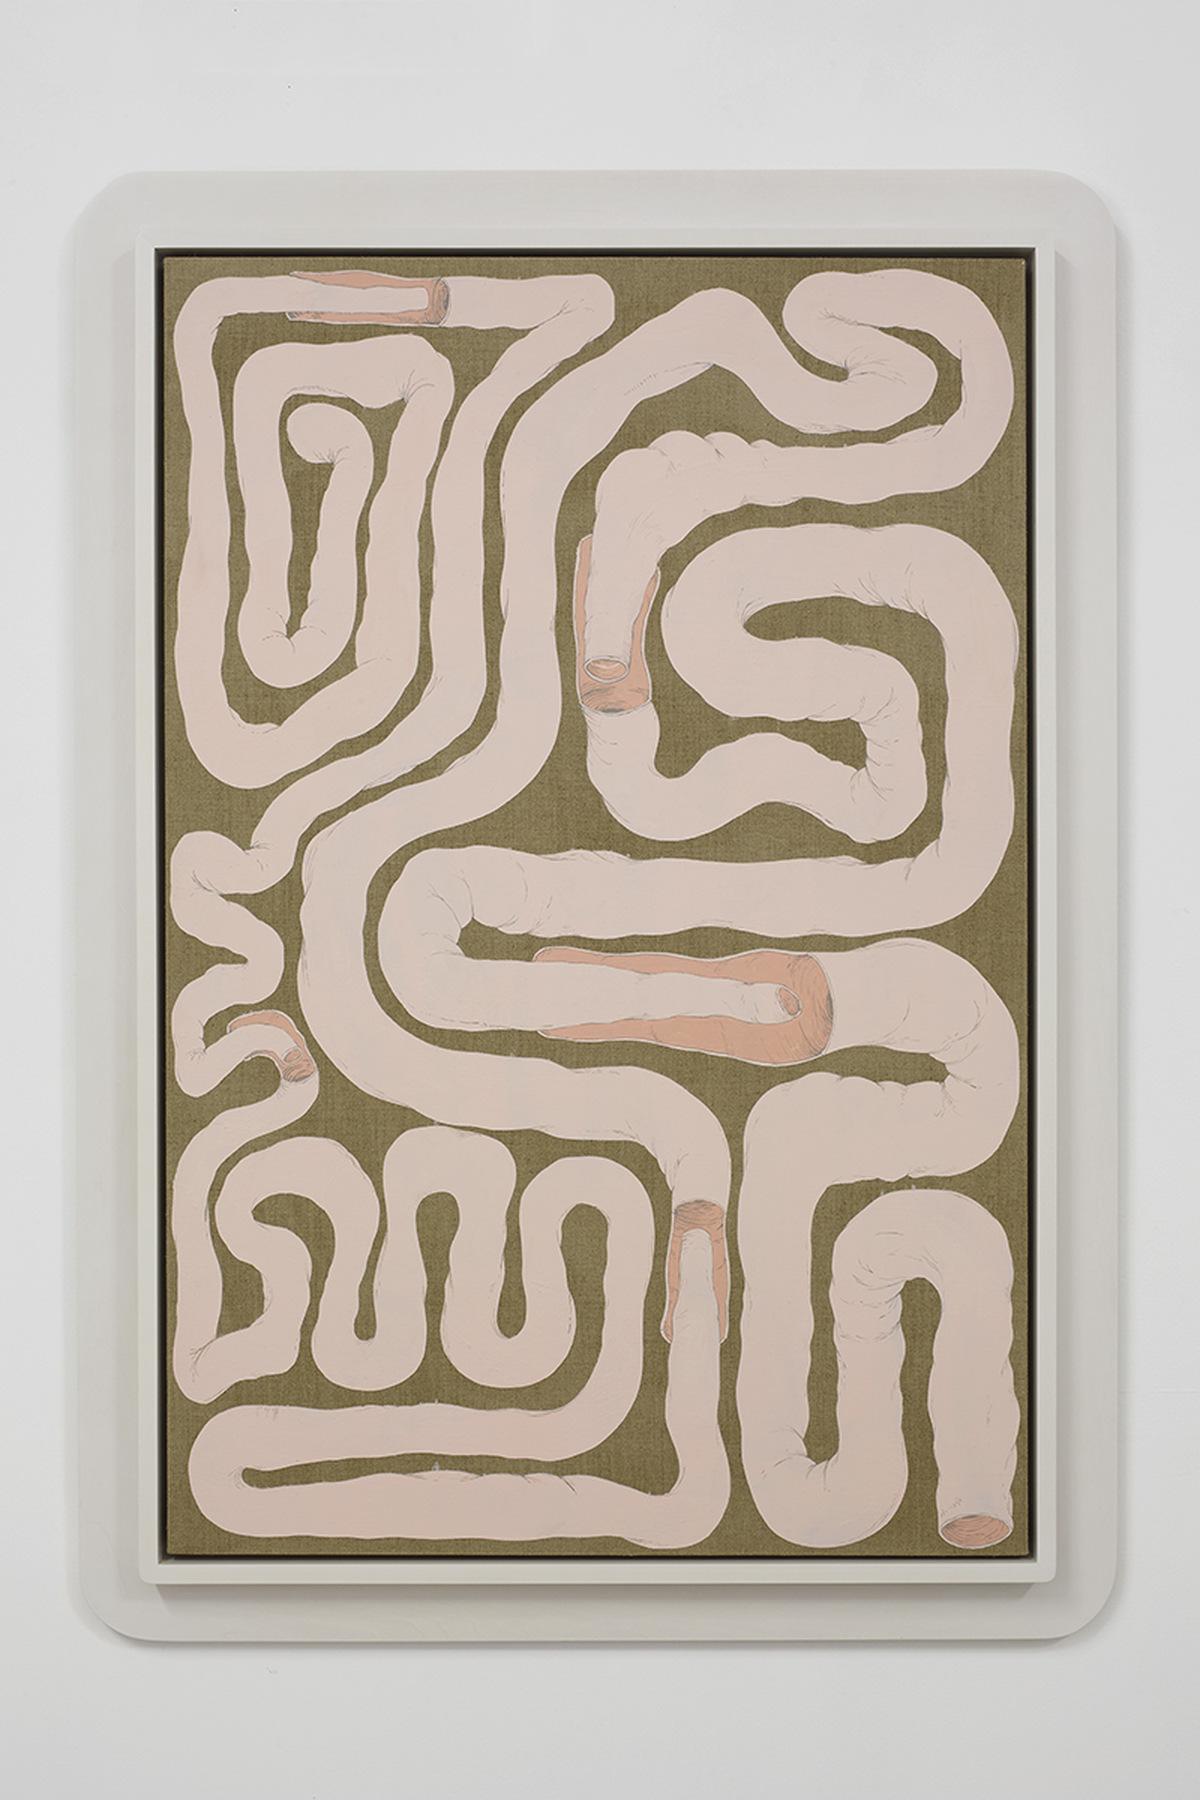 20.Hoeber_Intestinal Floorplan_Security Apparatus, 2015_Flashe and acrylic on linen with artist's frame_48.5x34.5in